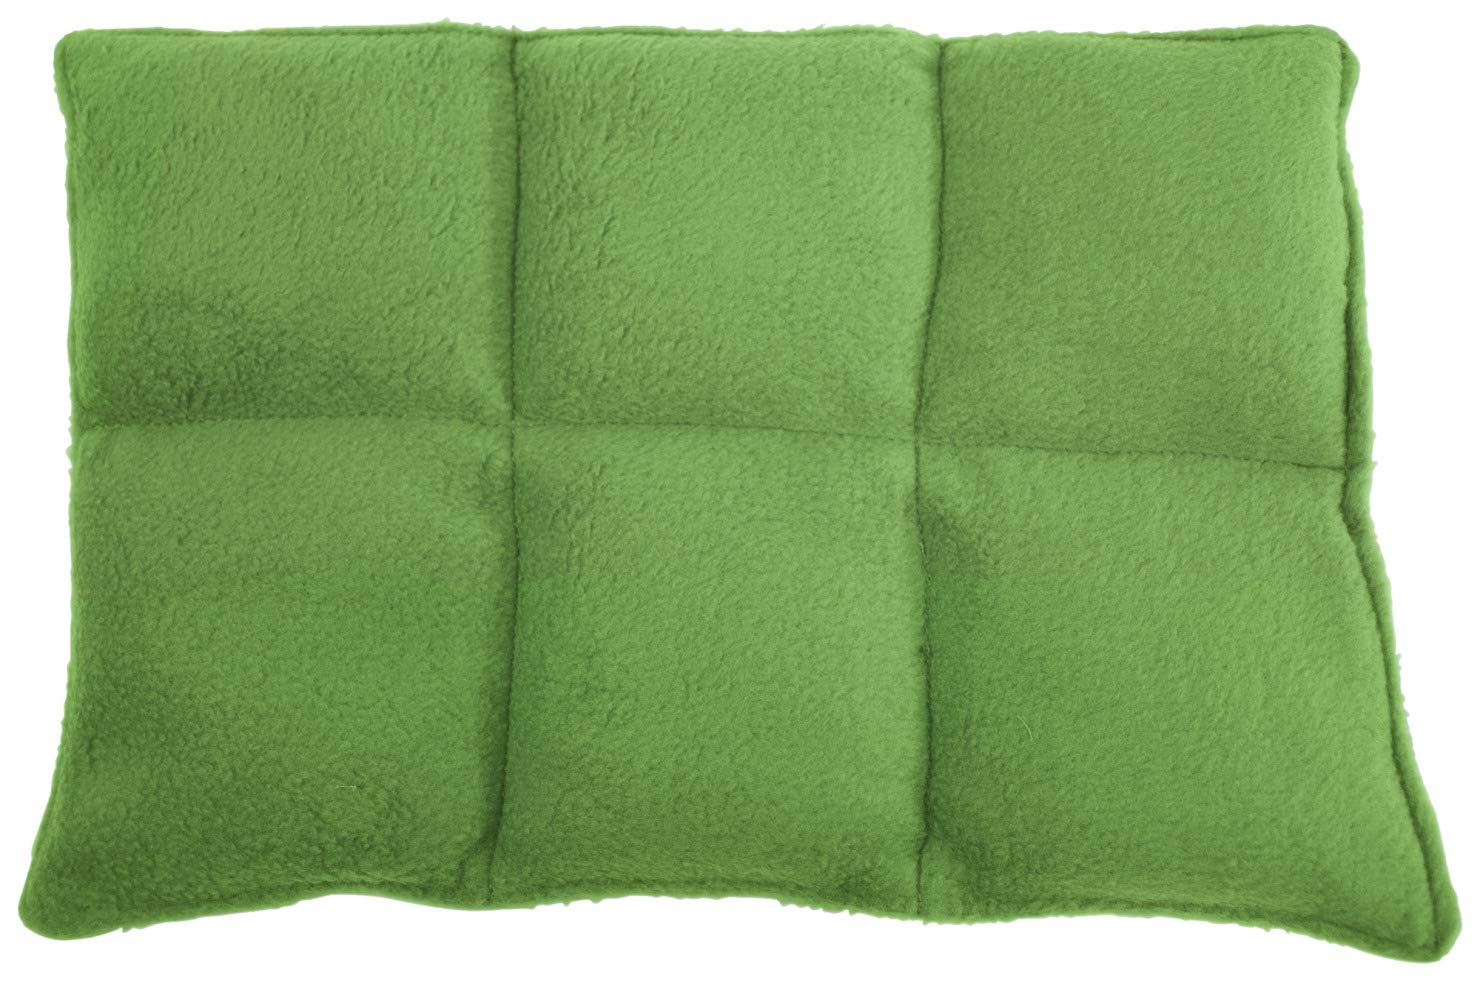 Abilitations Weighted Lap Pad, Small, Green